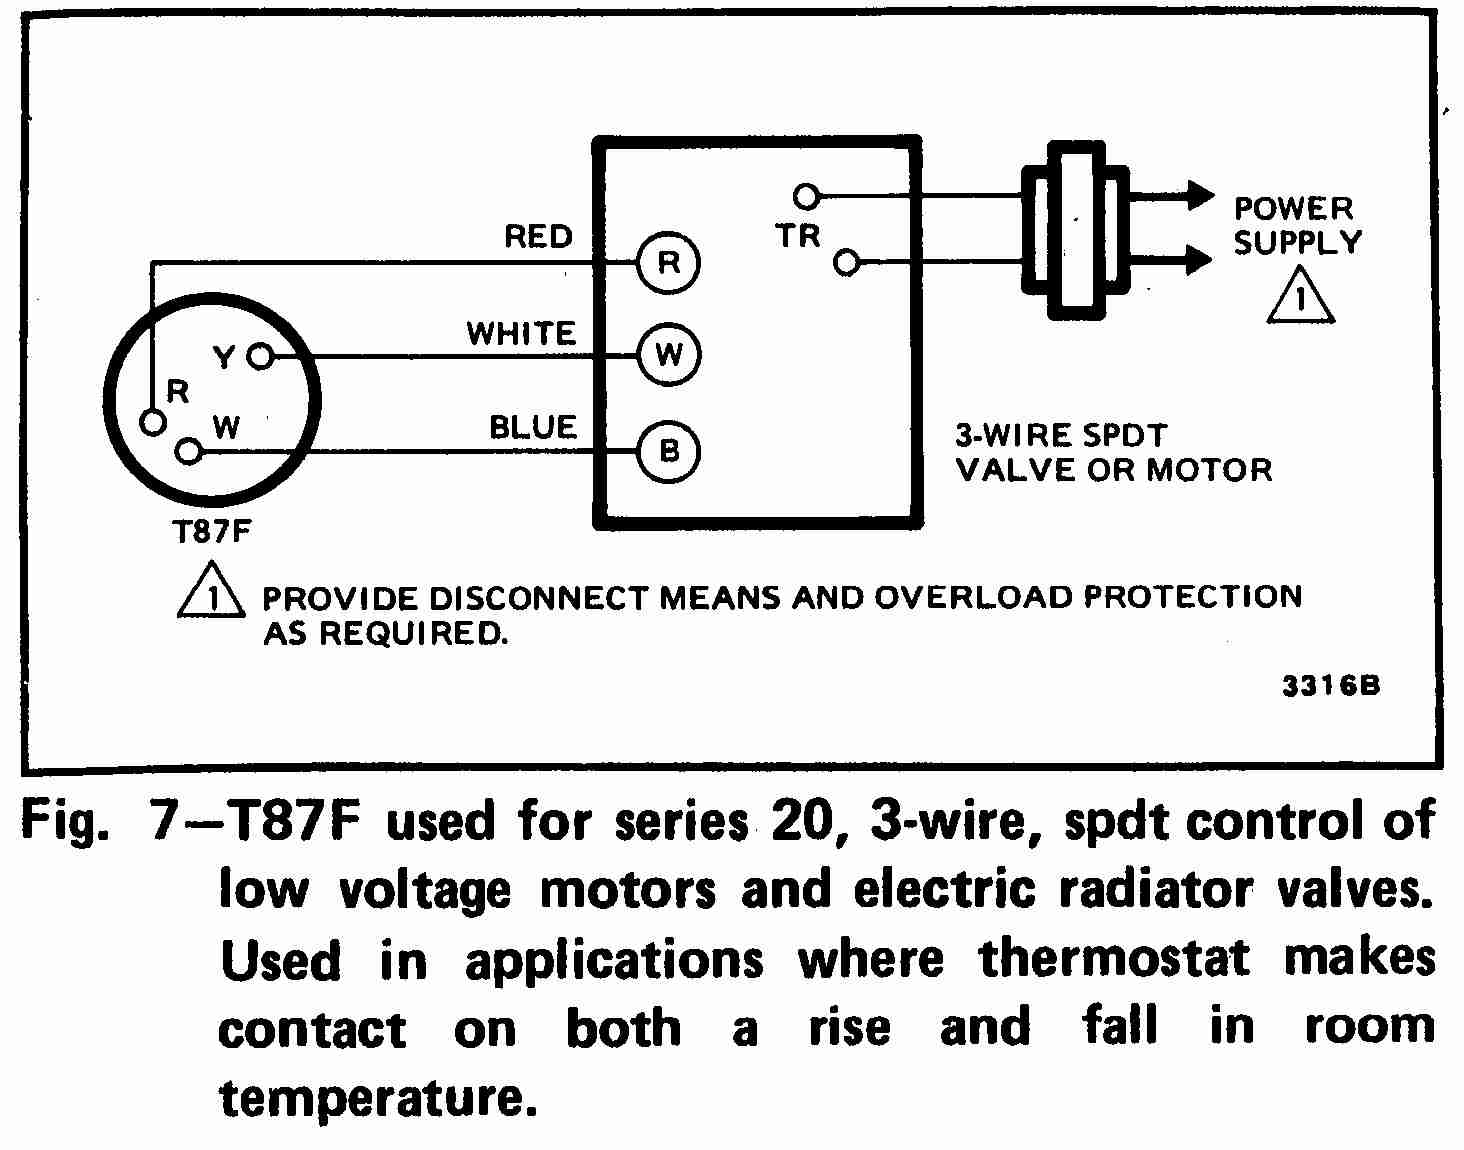 TT_T87F_0002_3W2_DJF room thermostat wiring diagrams for hvac systems thermostat wiring diagram at readyjetset.co